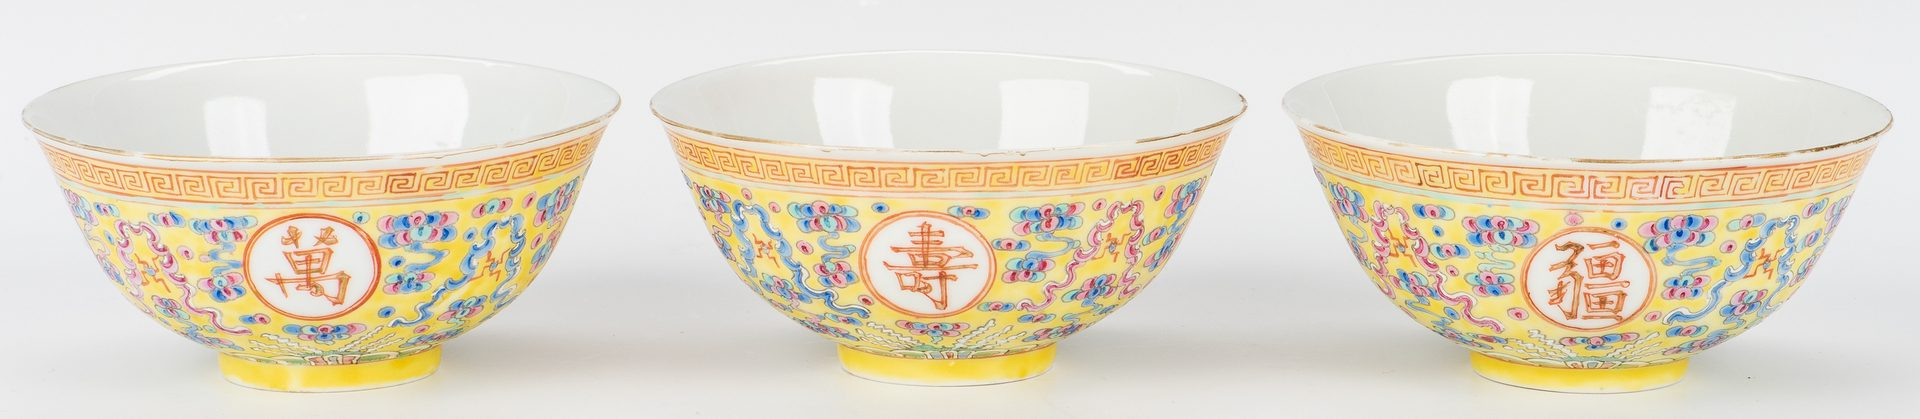 Lot 19: 5 Chinese Yellow Ground Enamel Decorated Pcs.